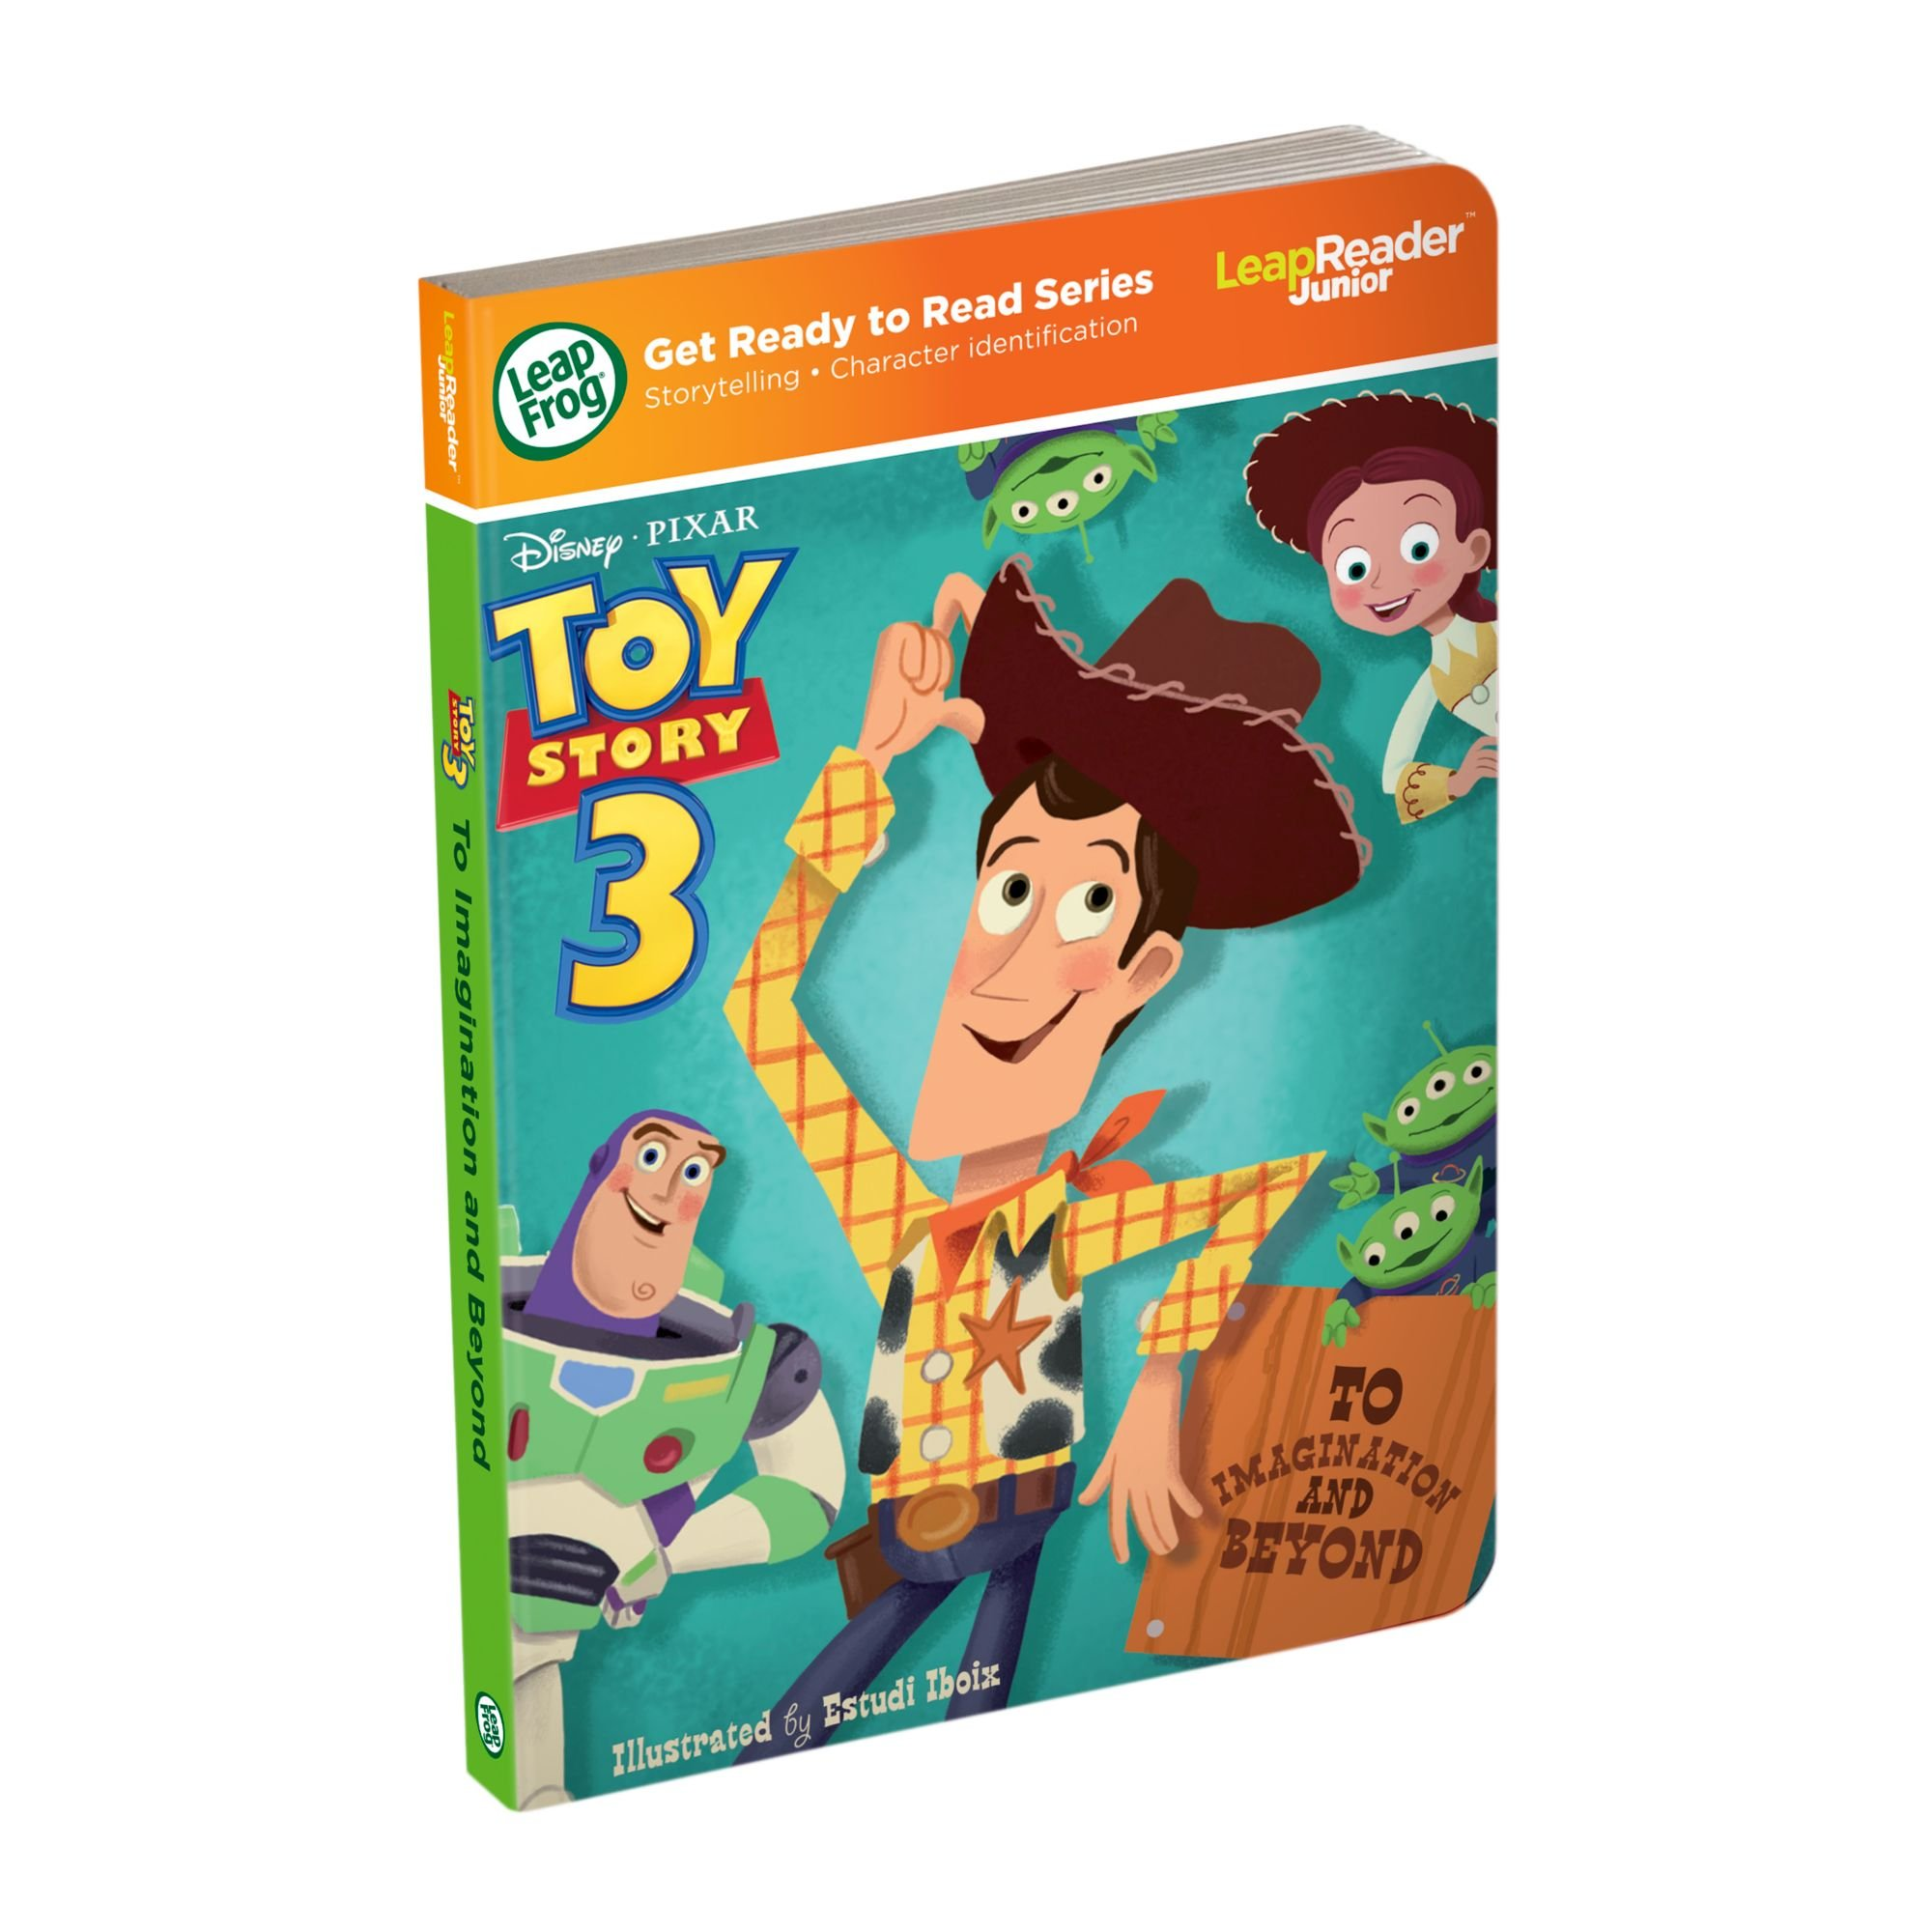 LeapFrog LeapReader Junior Book: DisneyPixar Toy Story 3: To Imagination and Beyond (works with Tag Junior)